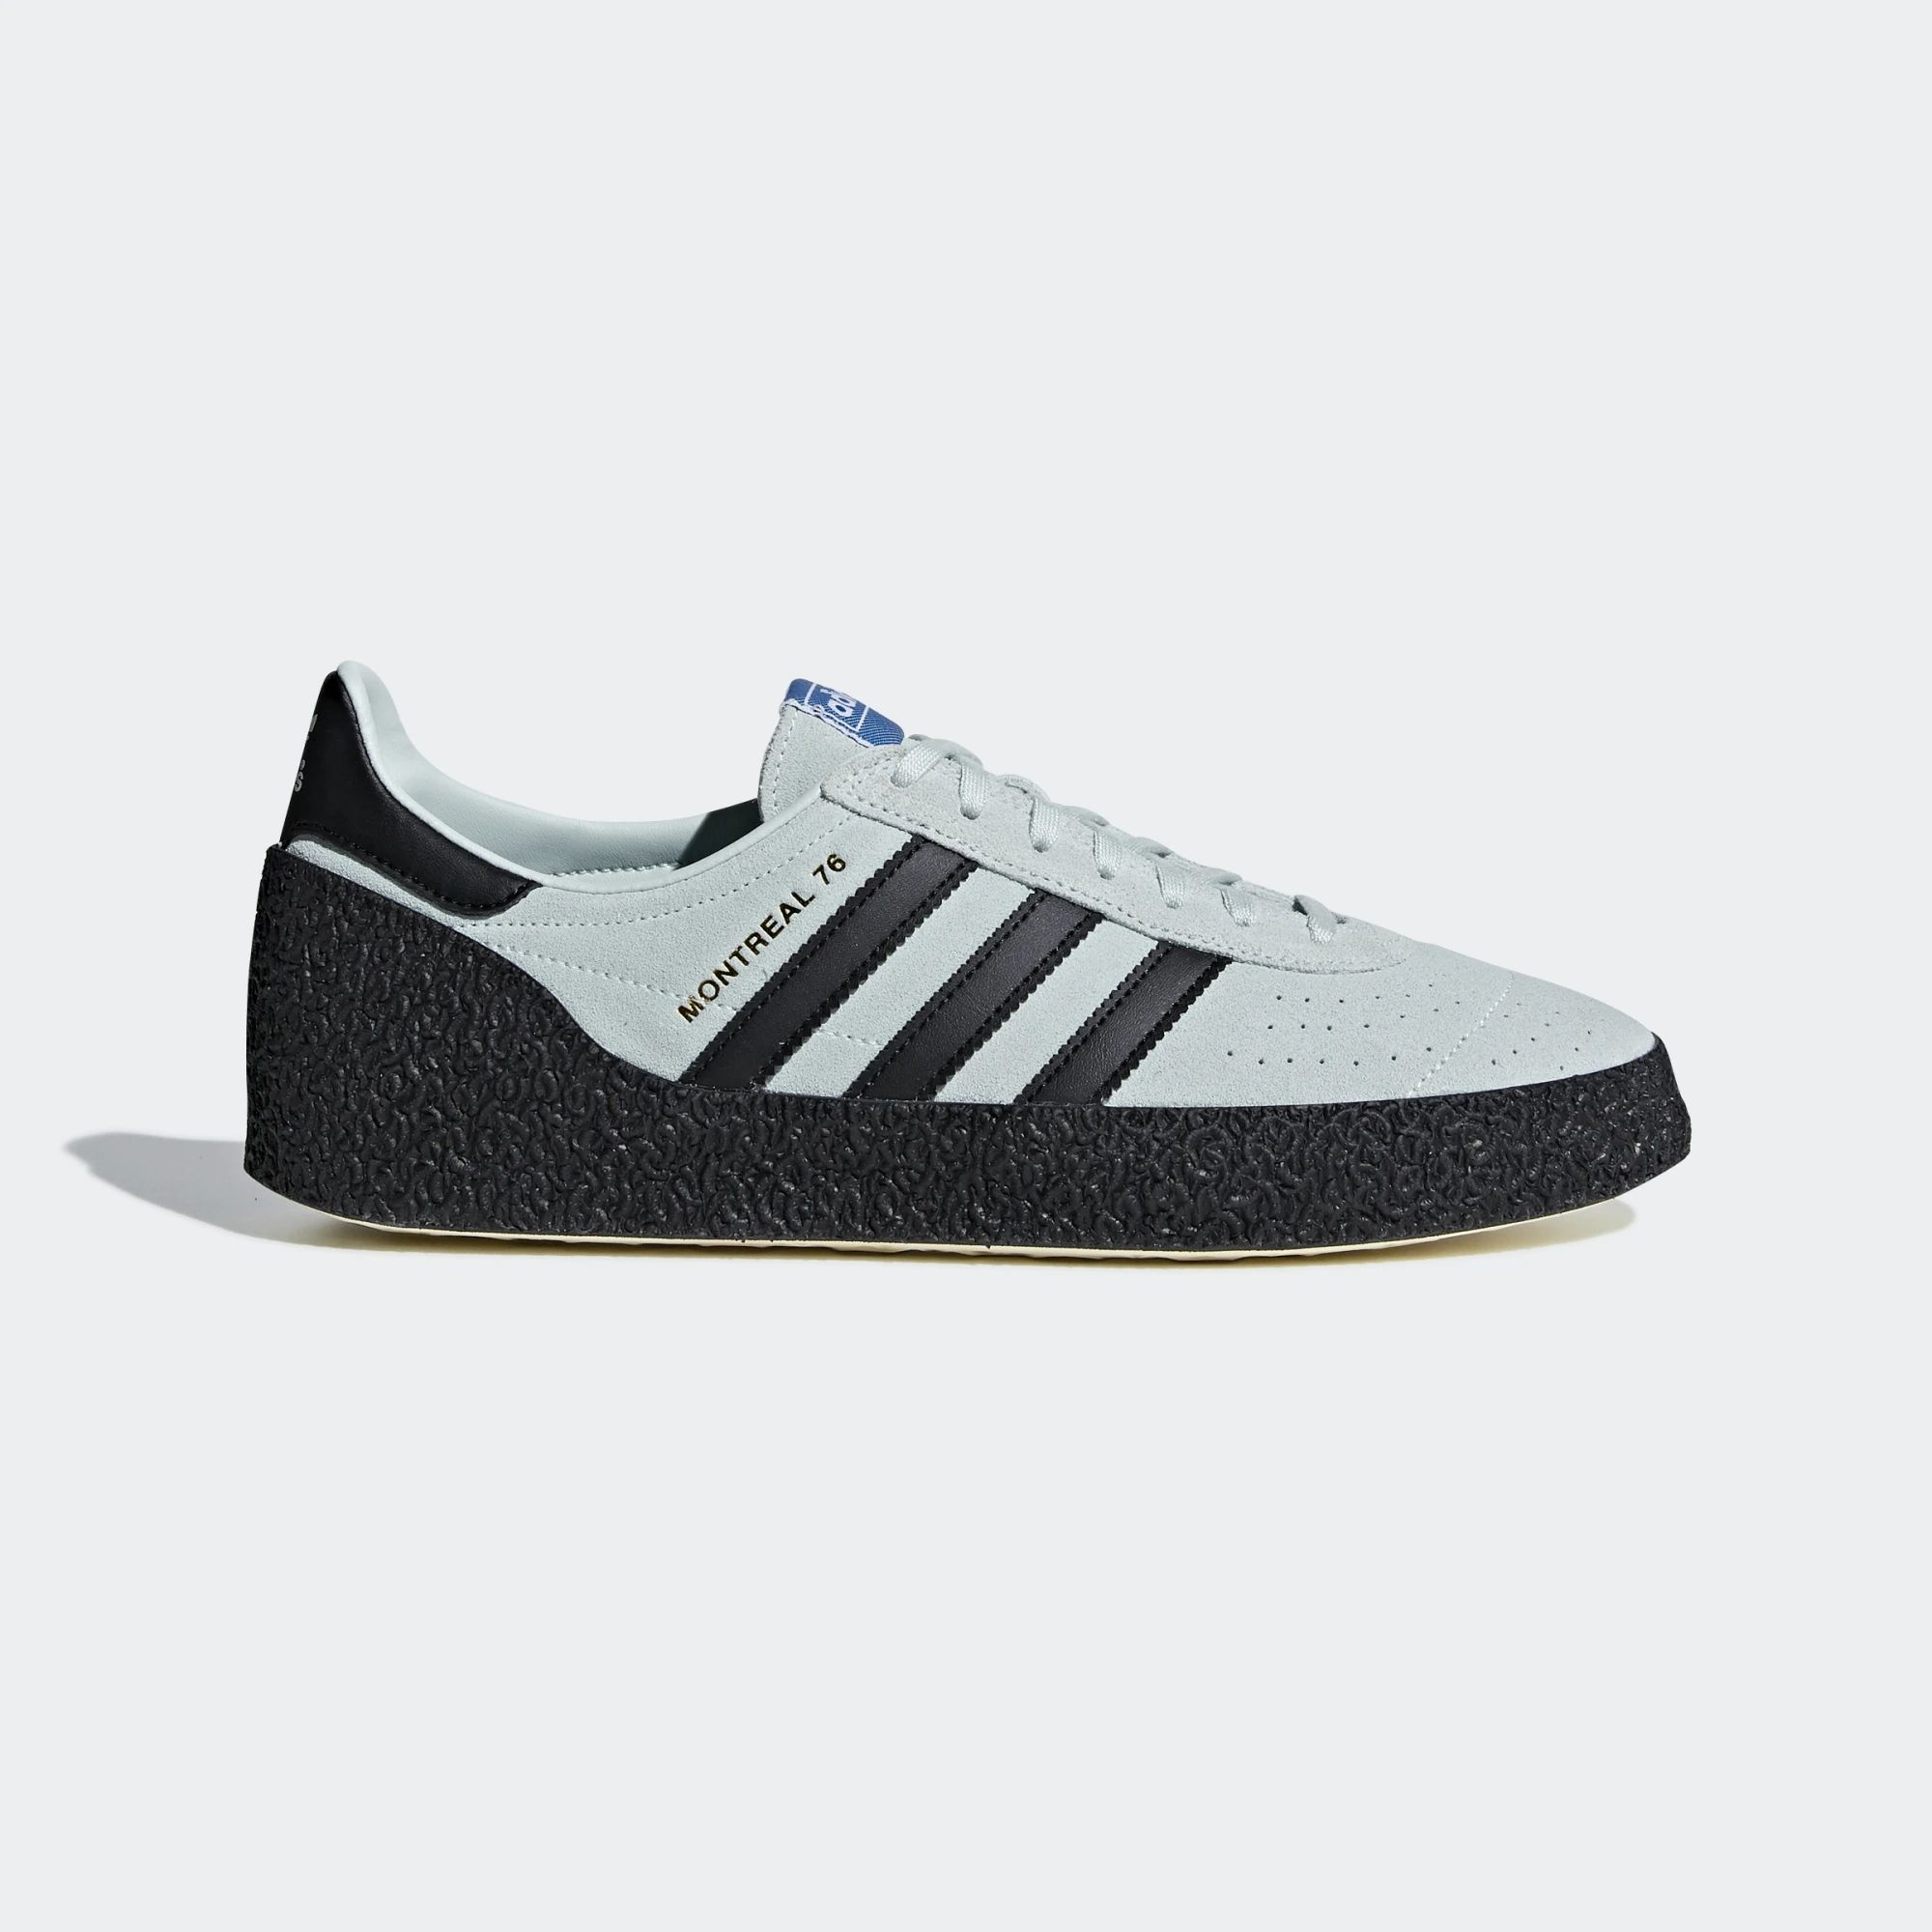 Adidas Montreal 76 Shoes - Vapour Green